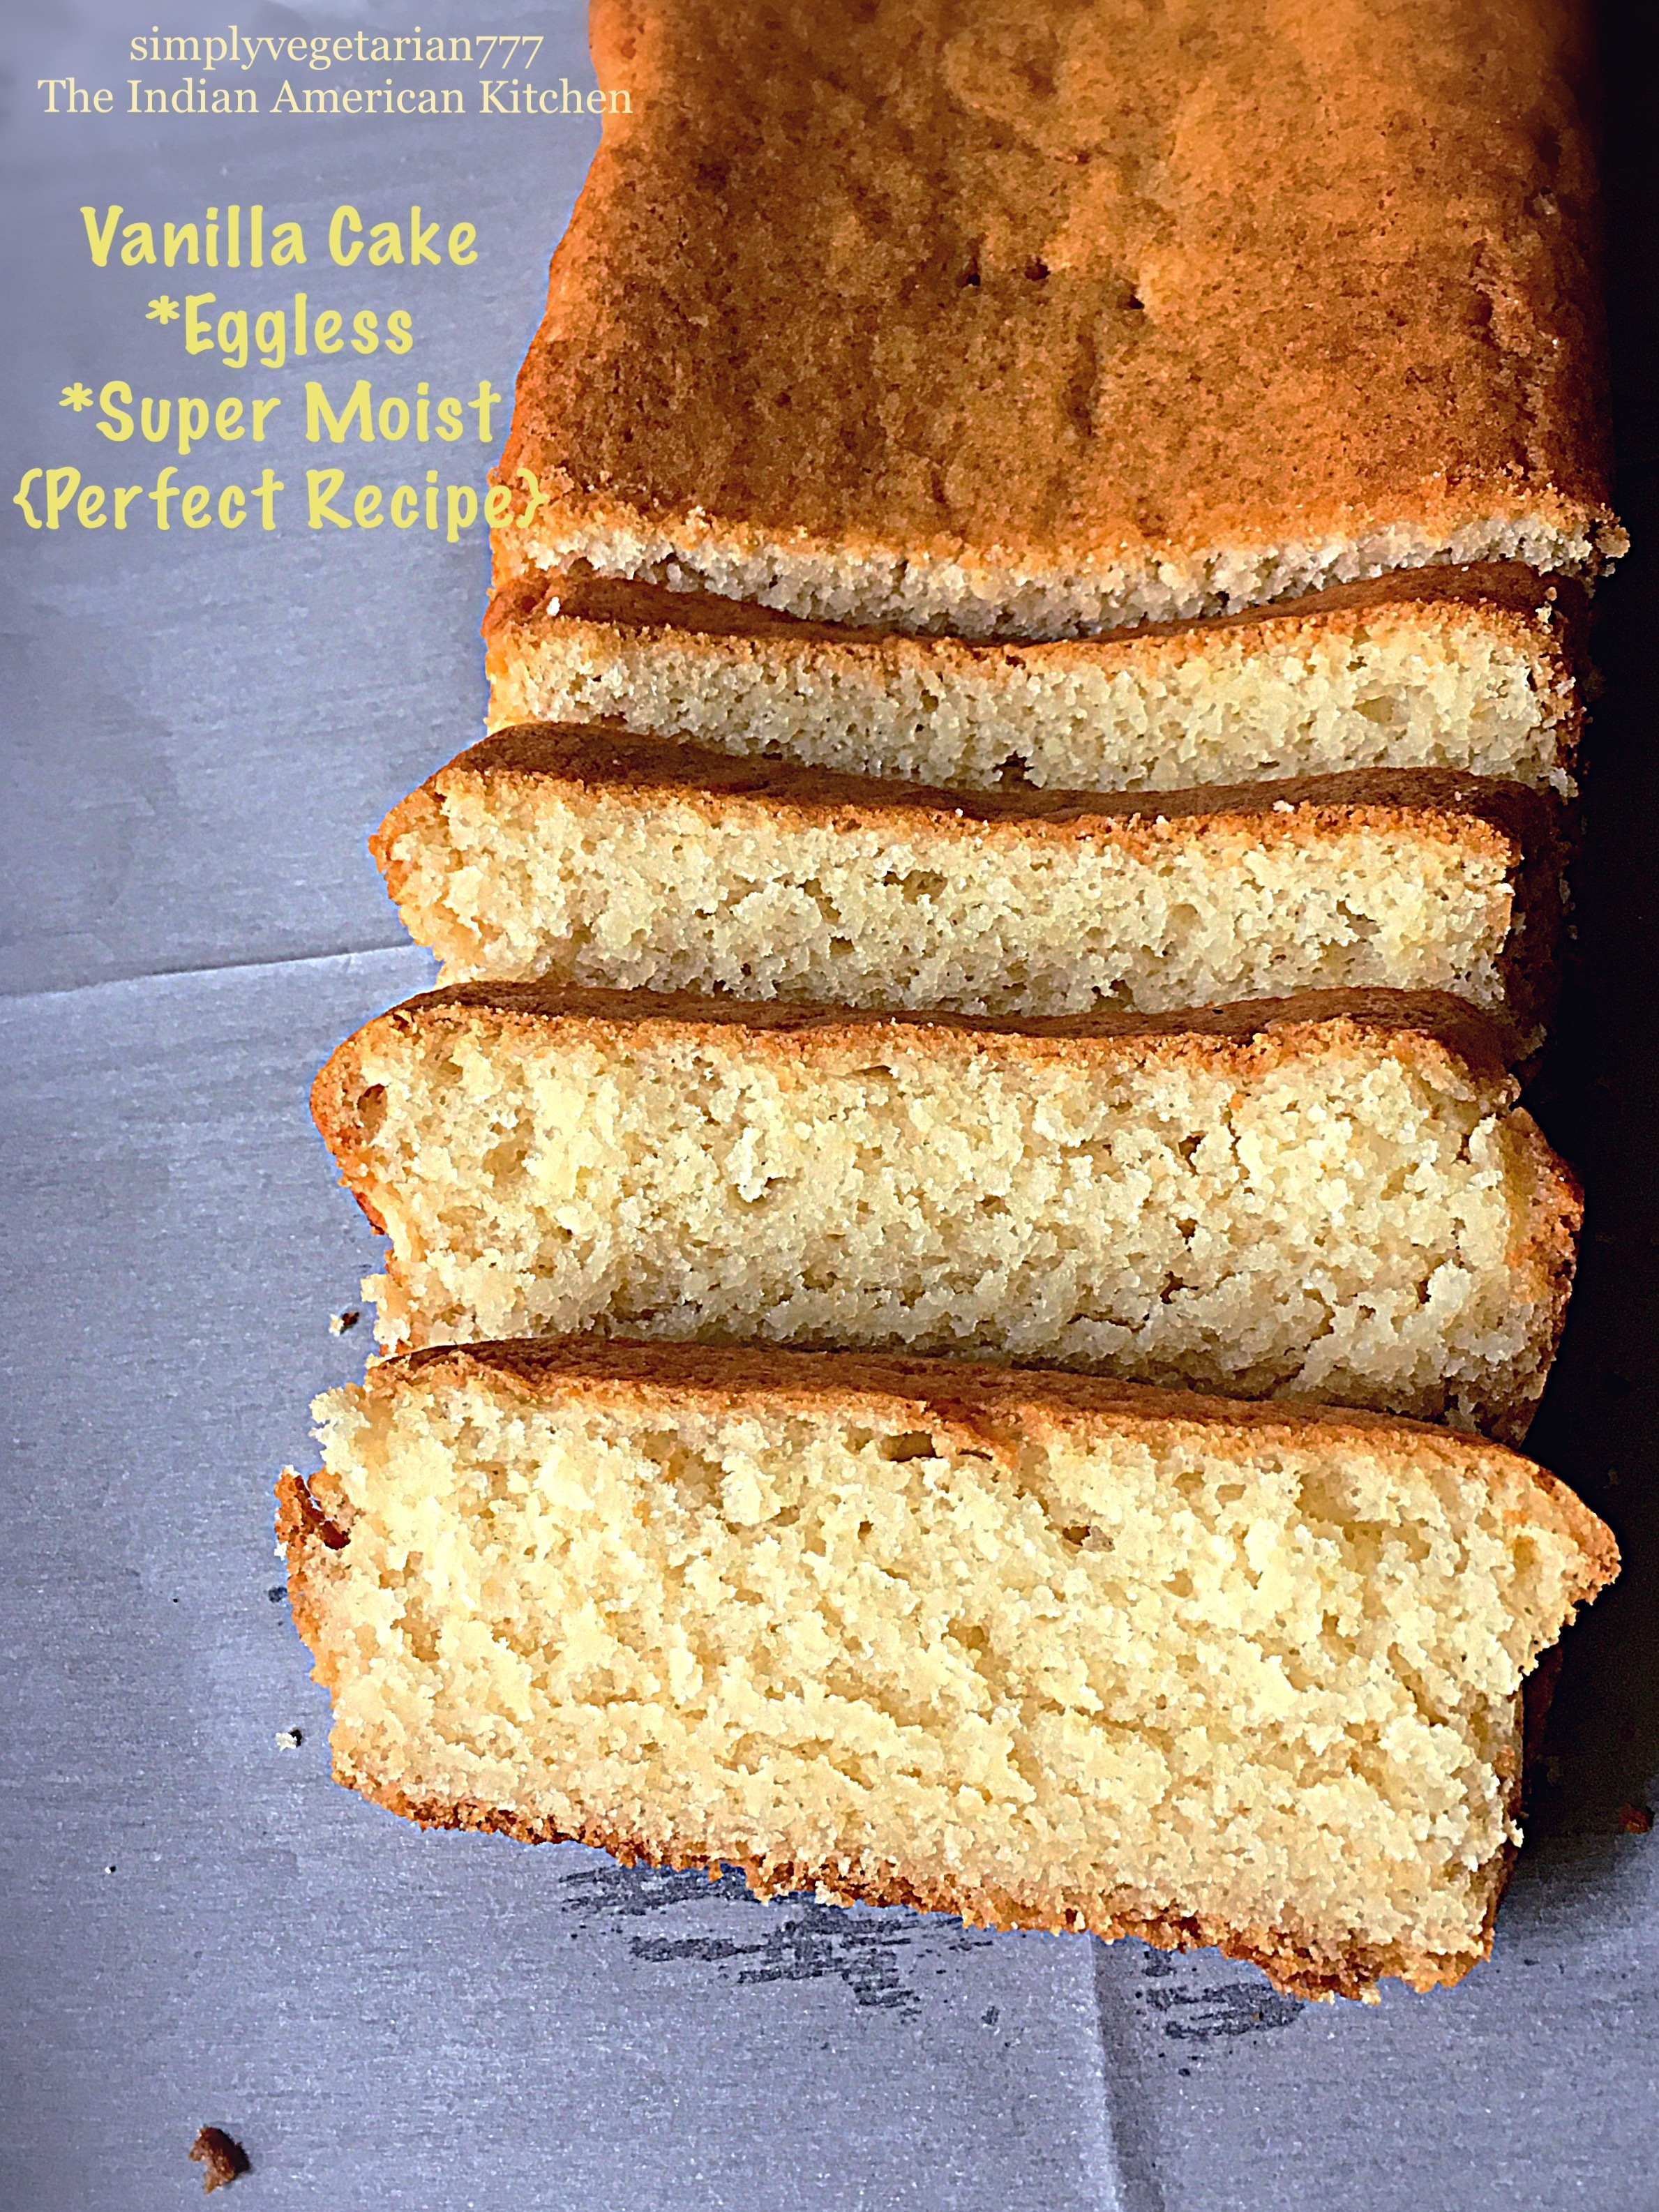 Basic Vanilla Cake – Super Moist & Eggless